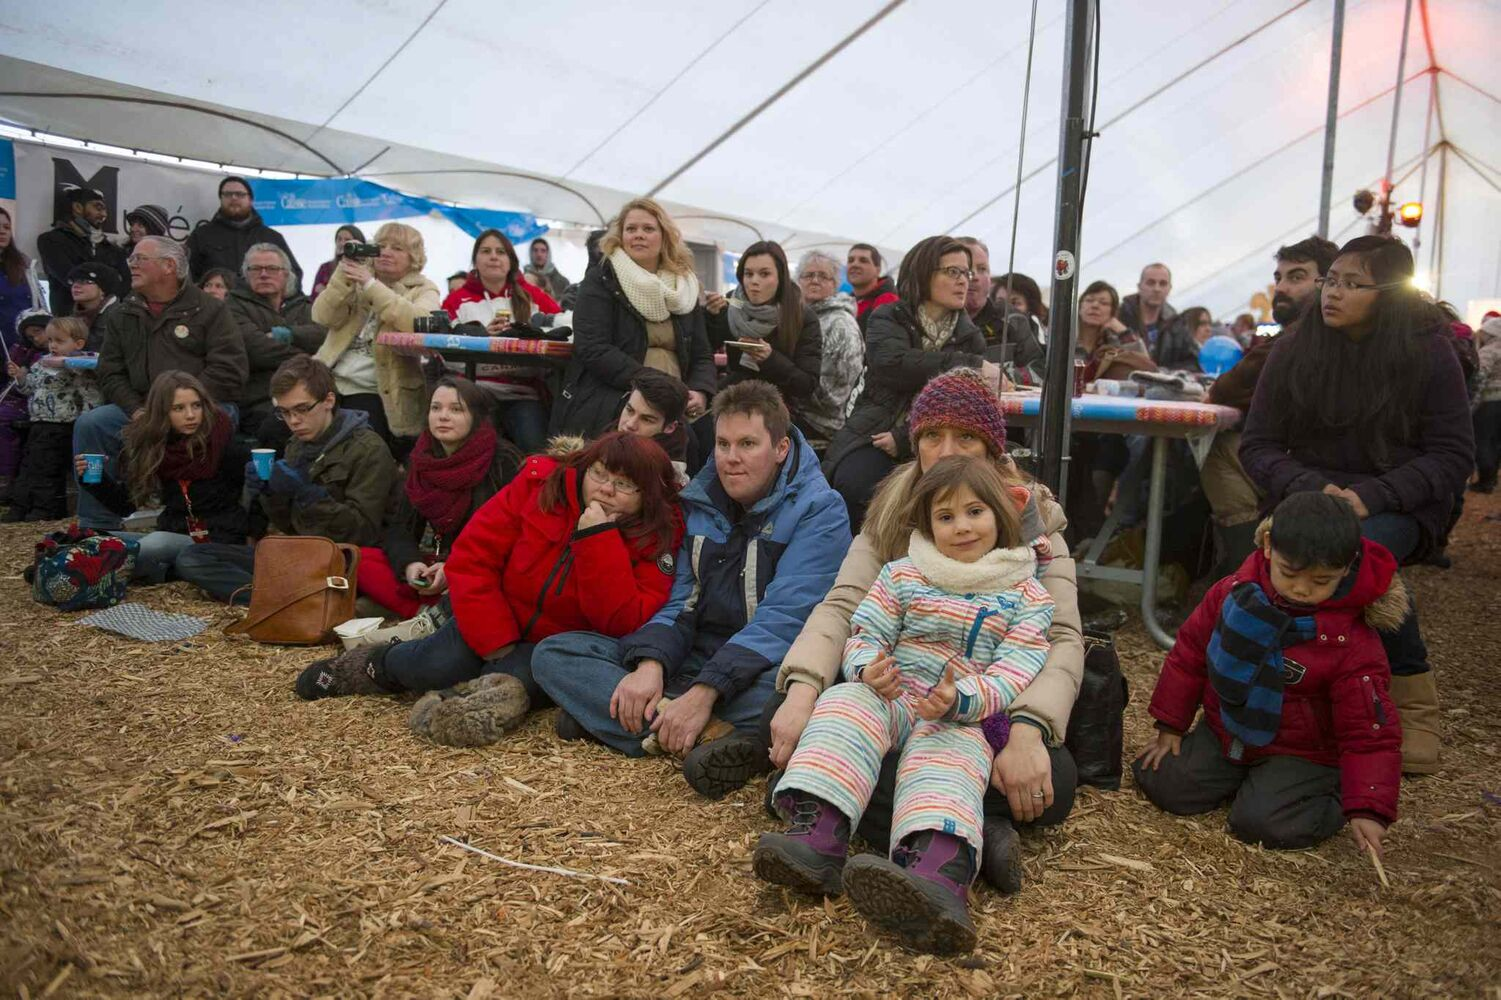 Crowds turned out to enjoy entertainment at Festival du Voyageur Feb. 22.